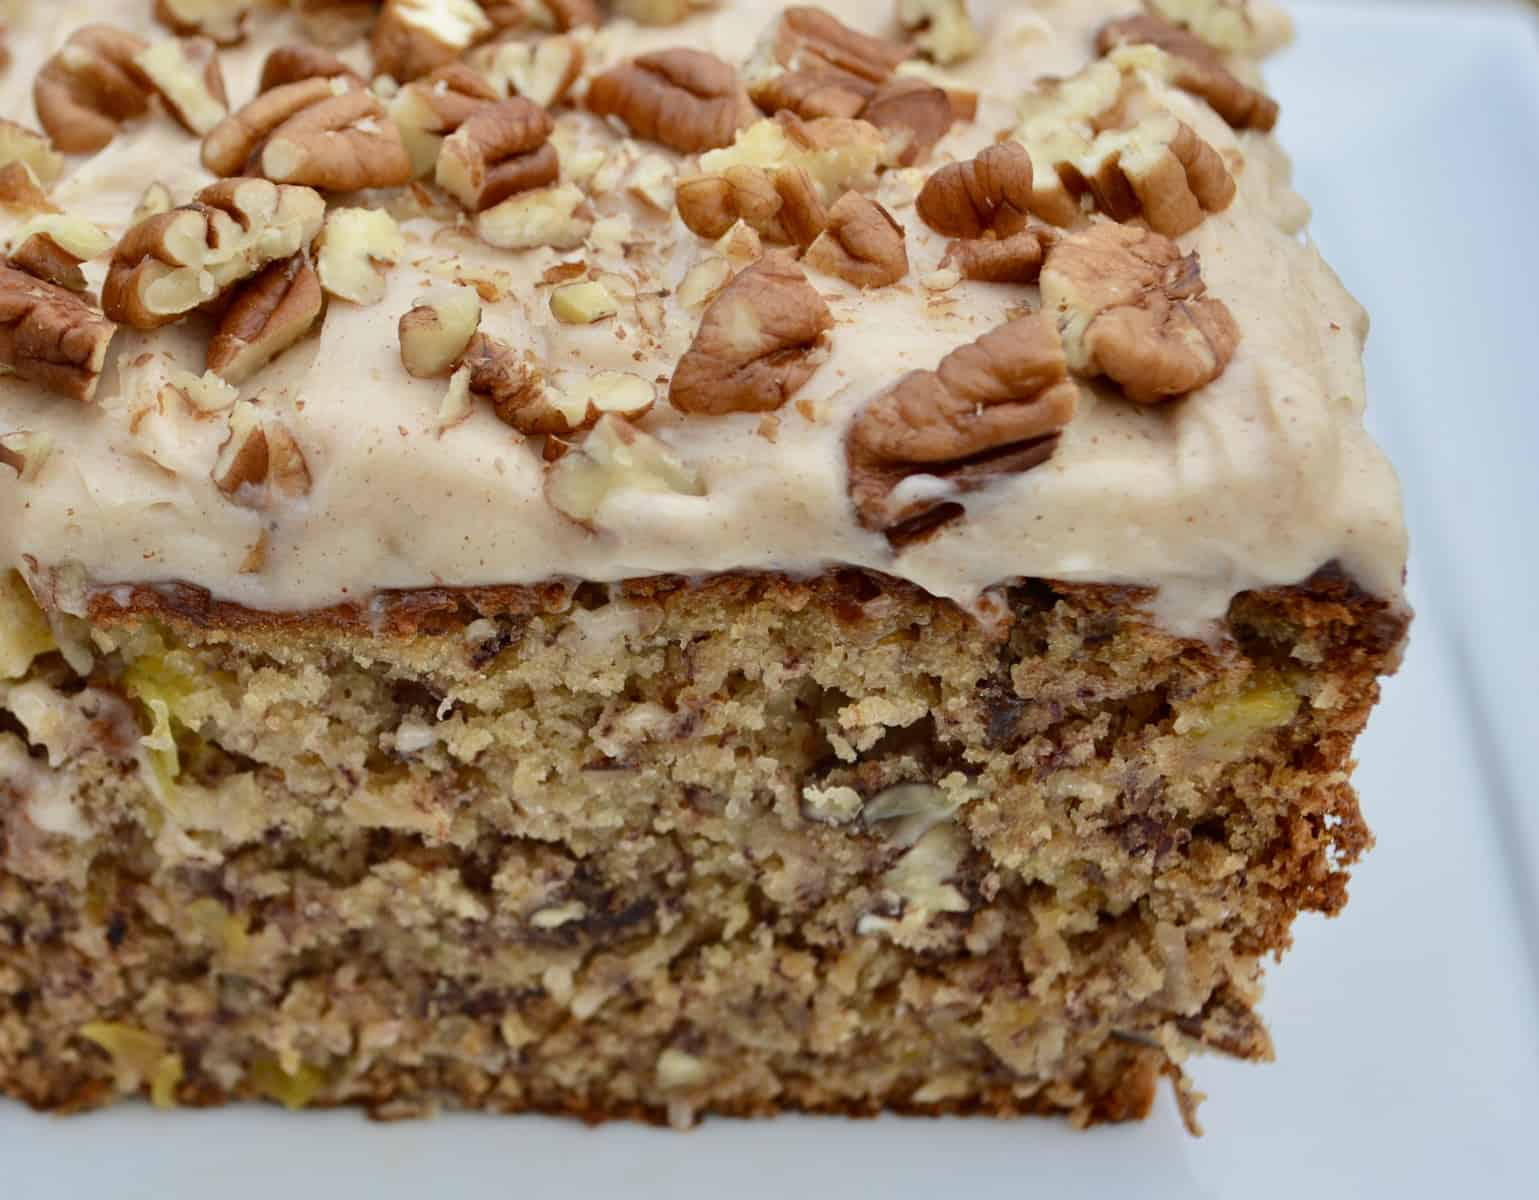 Hummingbird Bread with cinnamon cream cheese frosting topped with chopped pecans